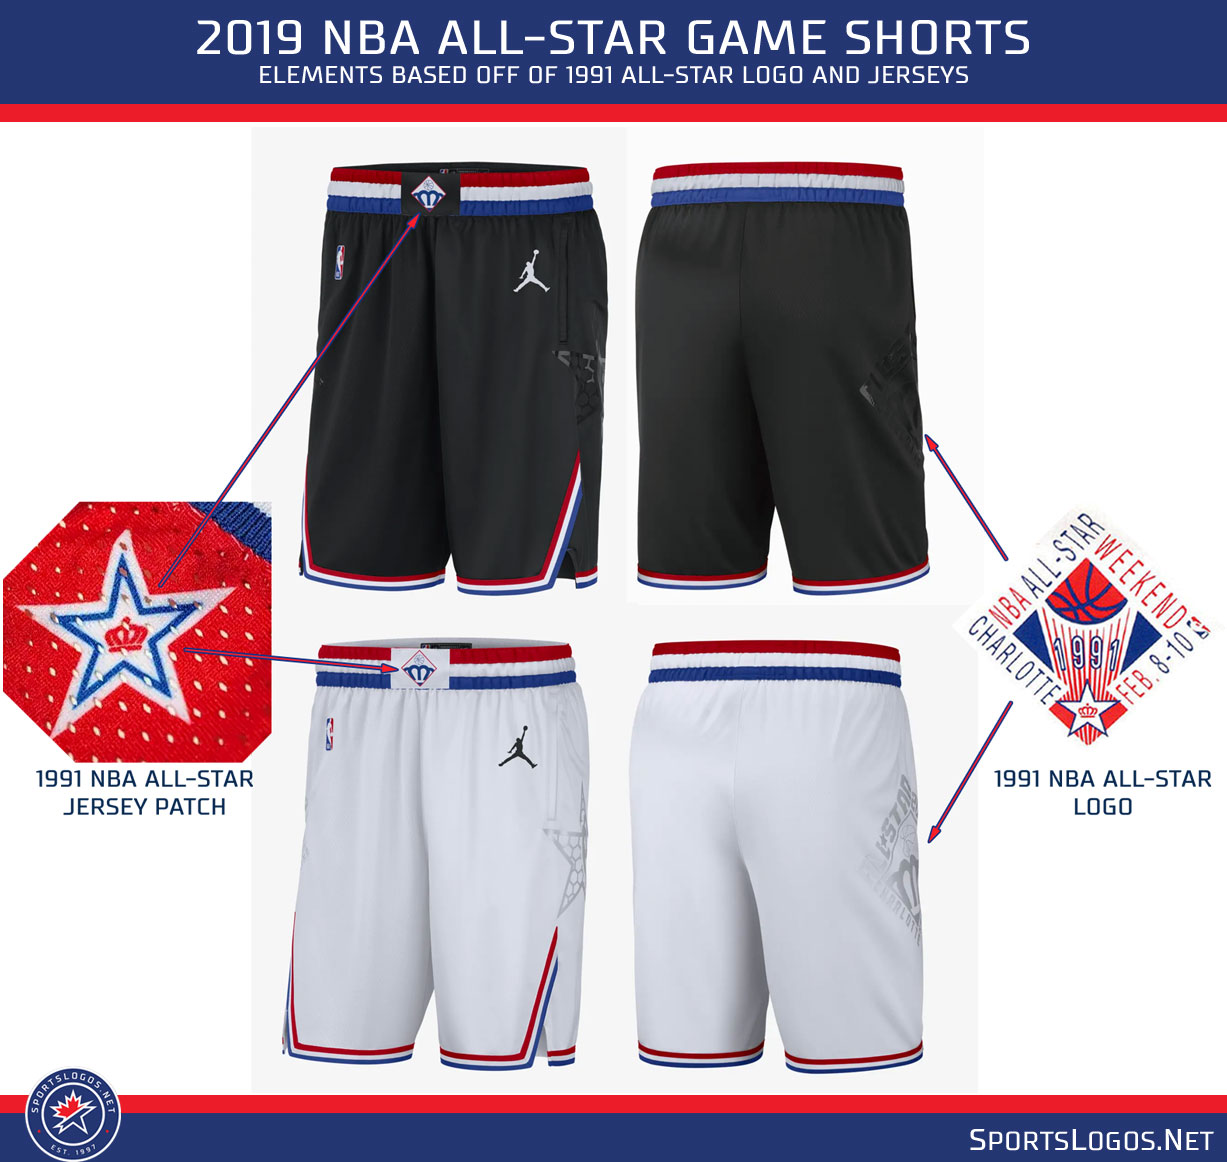 deed967ec93 ... we were able to find the 2019 NBA All-Star Game shorts and see those  additional references to the 1991 NBA All-Star Game logo and uniforms…